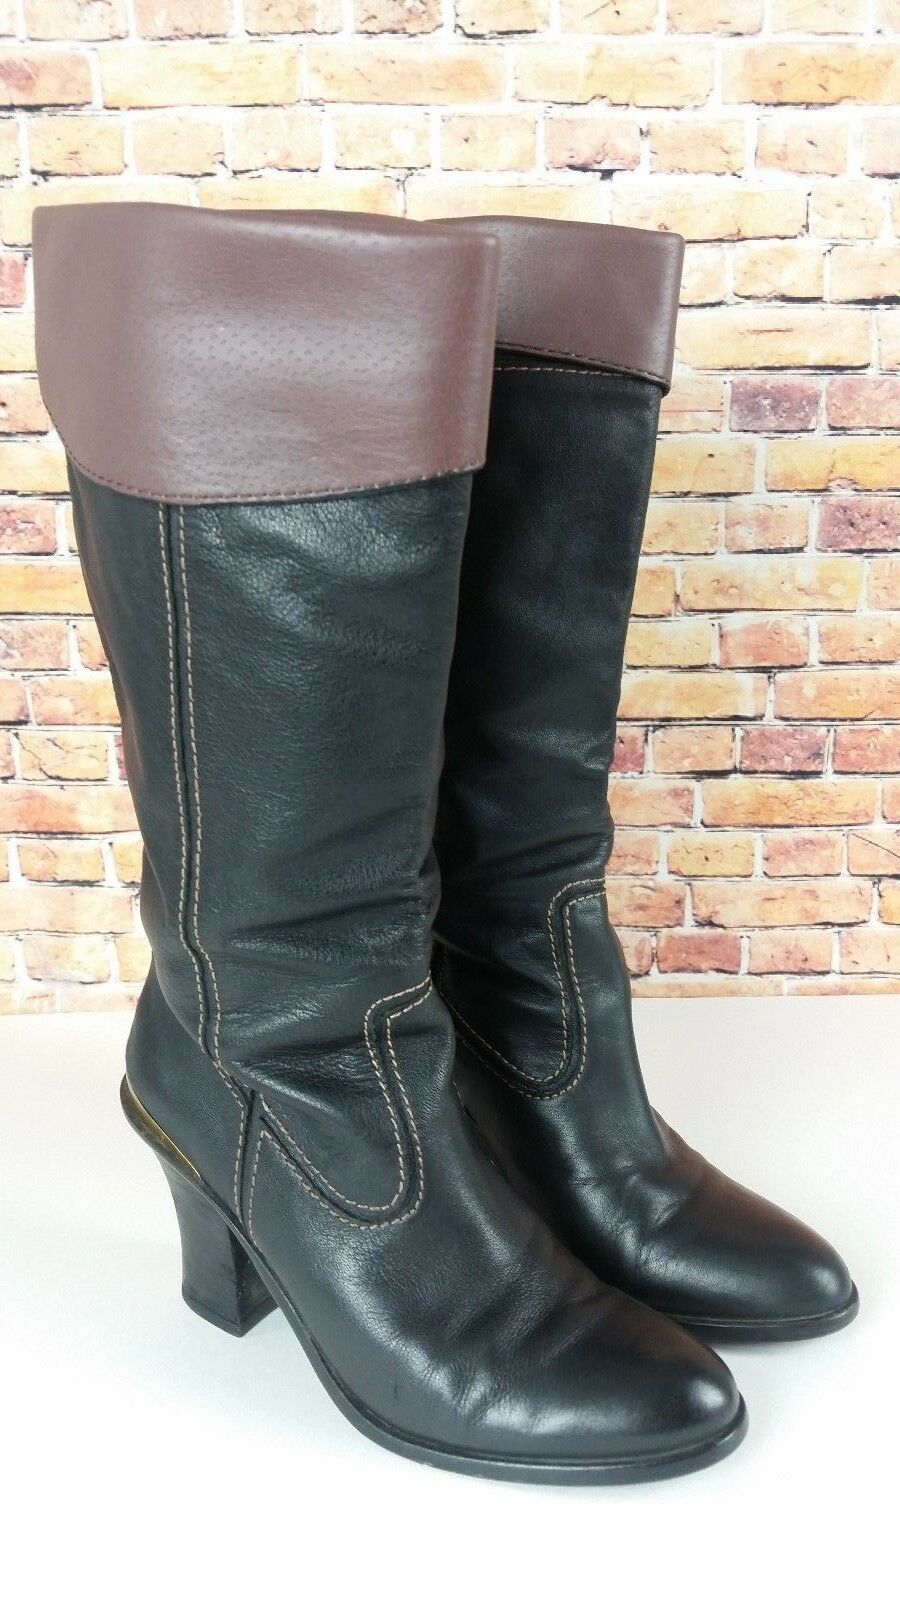 LUCKY BRAND Size 7 Medium Womens Black Leather LK-Elena Mid Calf Pull On Boots